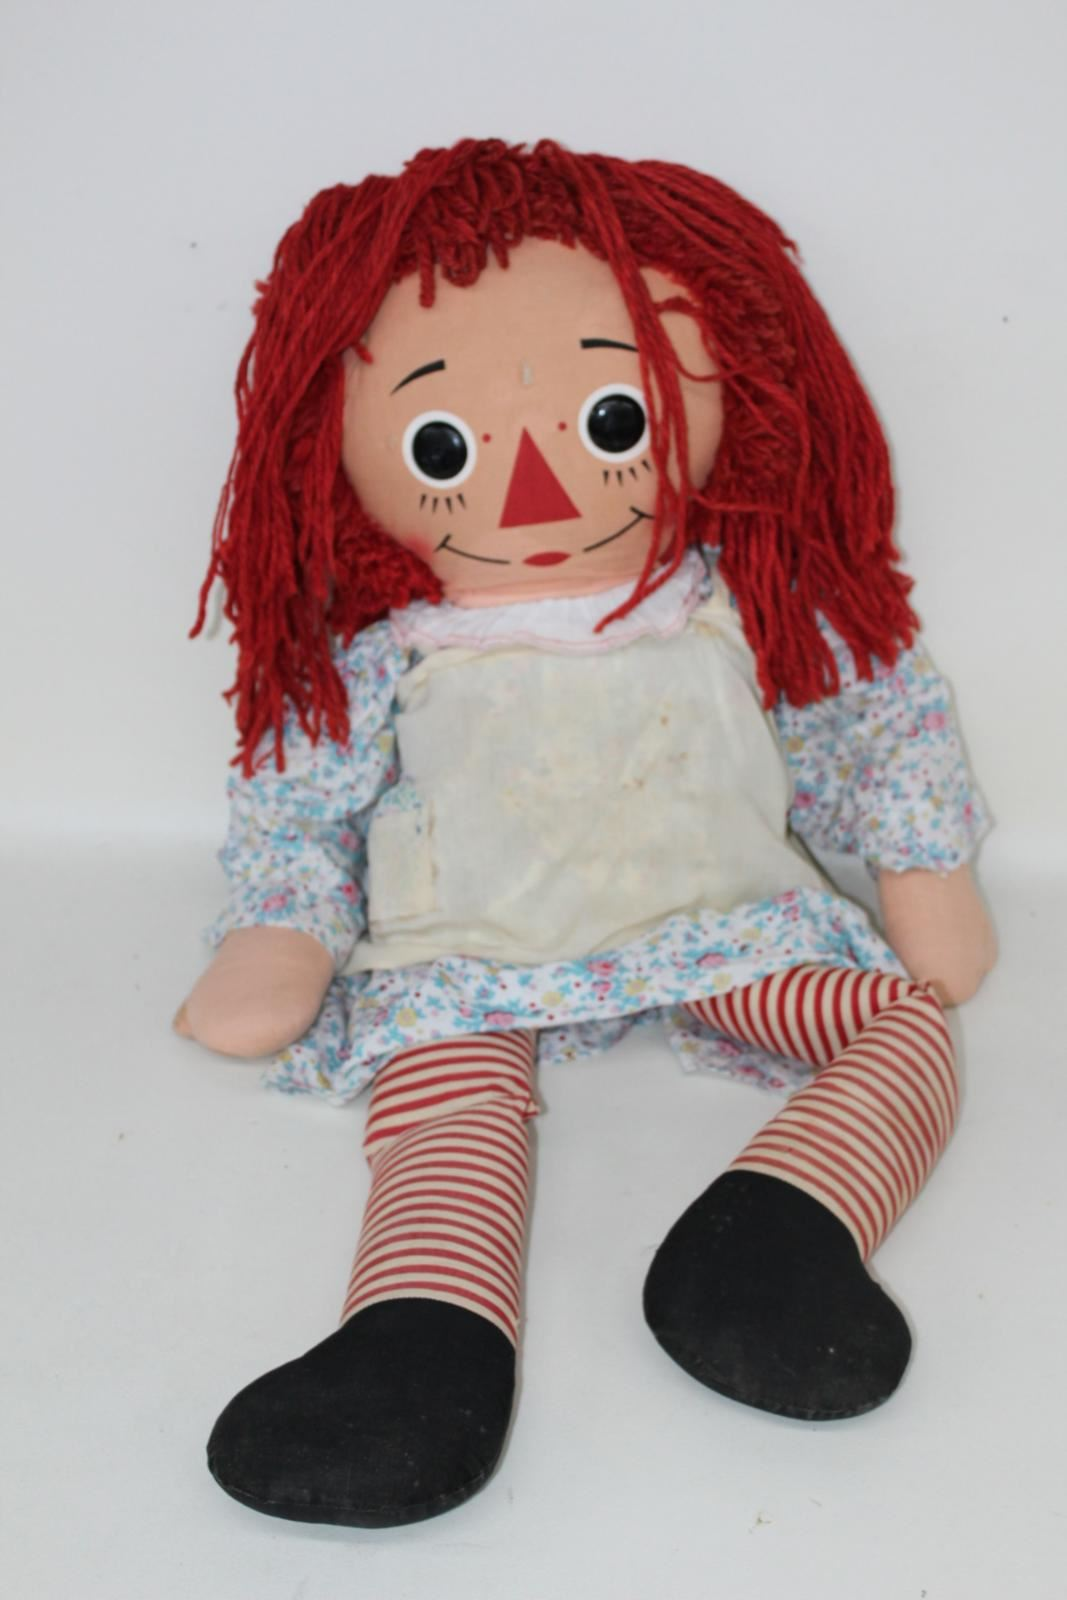 KNICKERBOCKER-Raggedy-Ann-Vintage-Collectible-Childrens-Life-Size-Toy-Doll